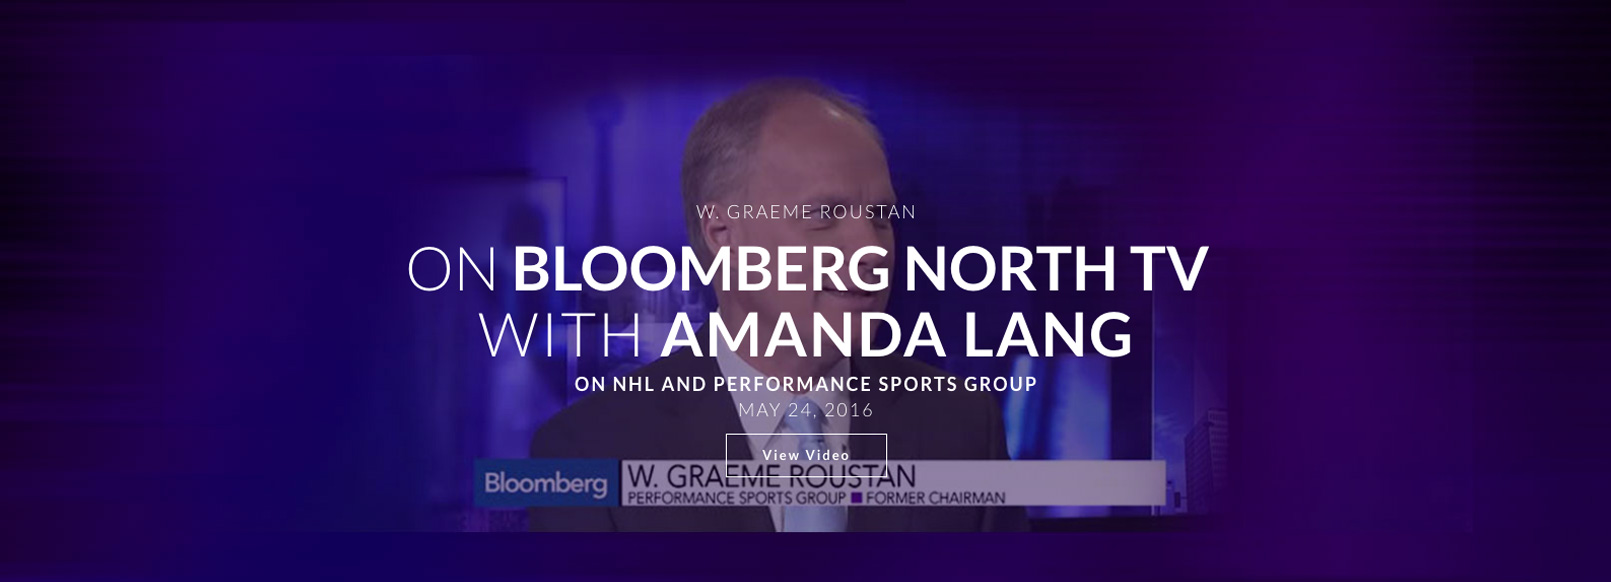 Home Page Sliders Appears on Bloomberg North TV